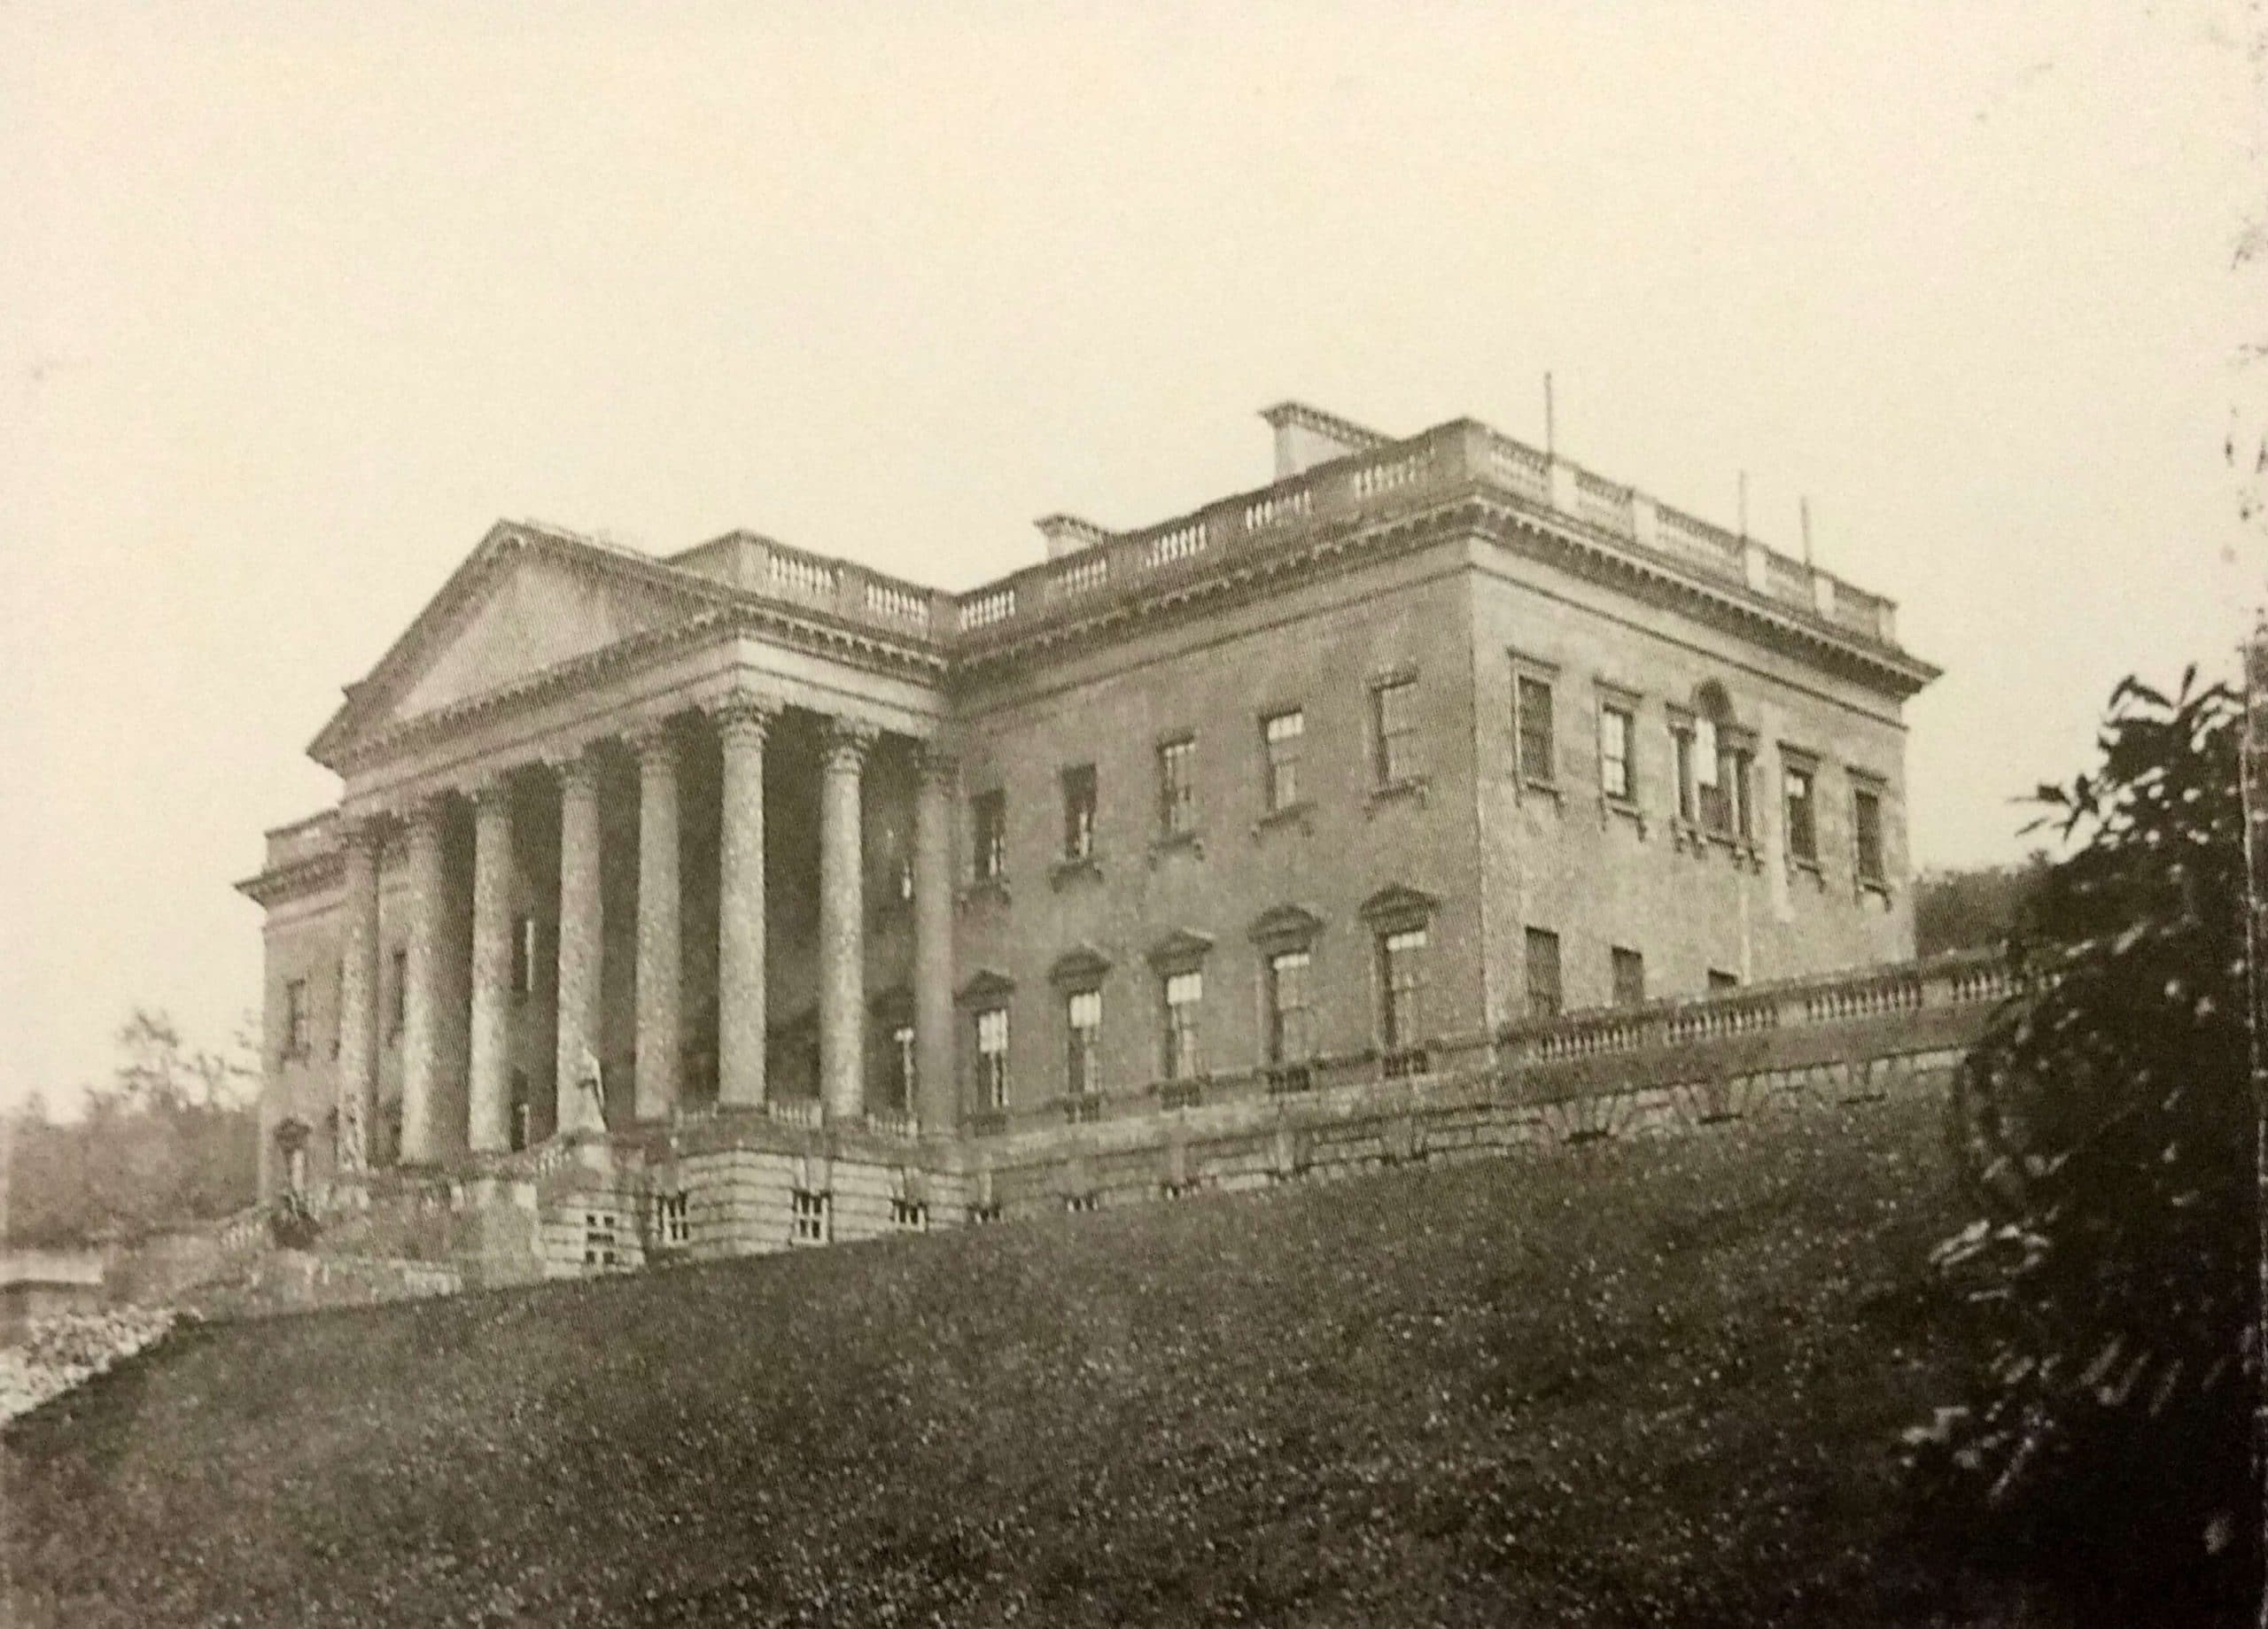 Prior Park mansion in about 1855, Rev Francis Lockey (1796 - 1869)